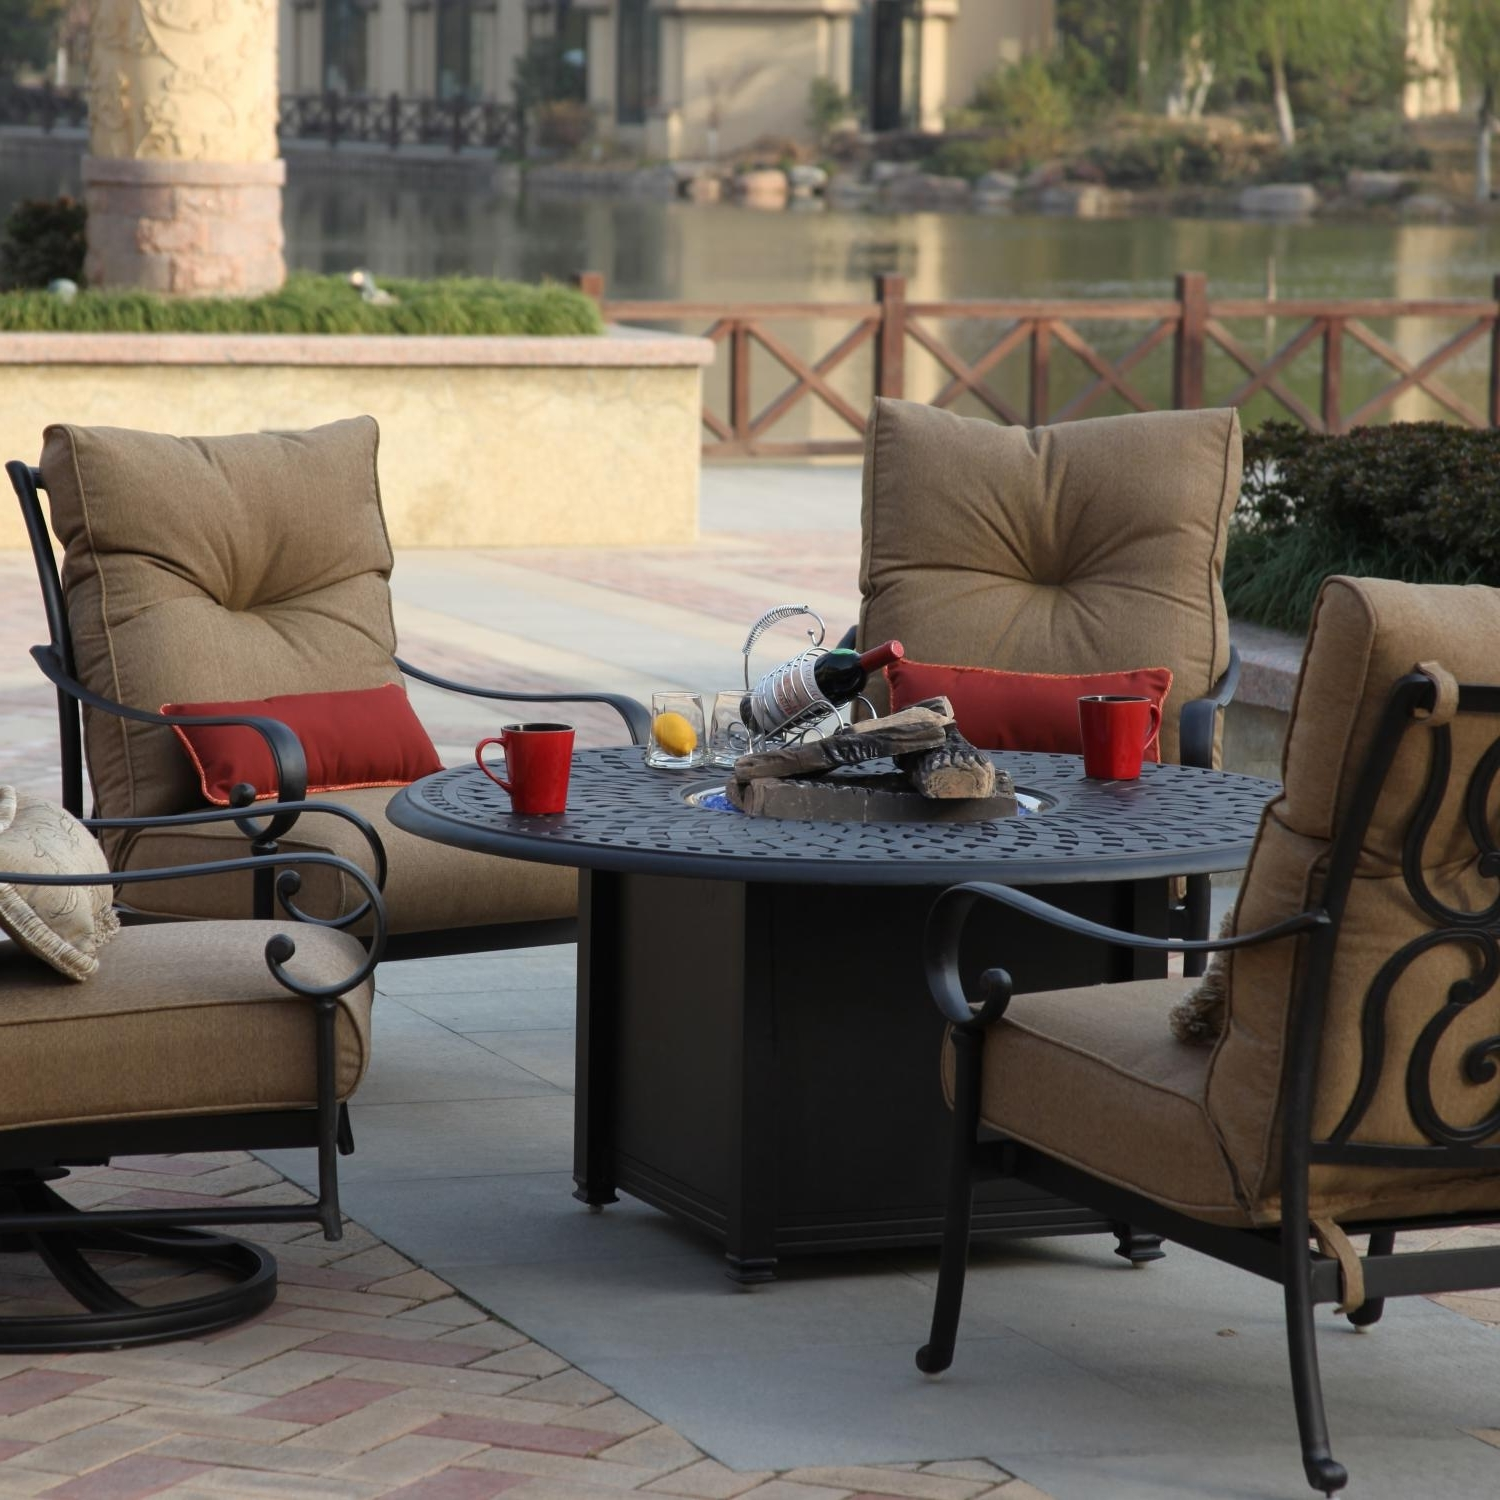 Trendy Deep Seating Patio Conversation Sets In Darlee Santa Anita 5 Piece Patio Fire Pit Seating Set (View 12 of 15)